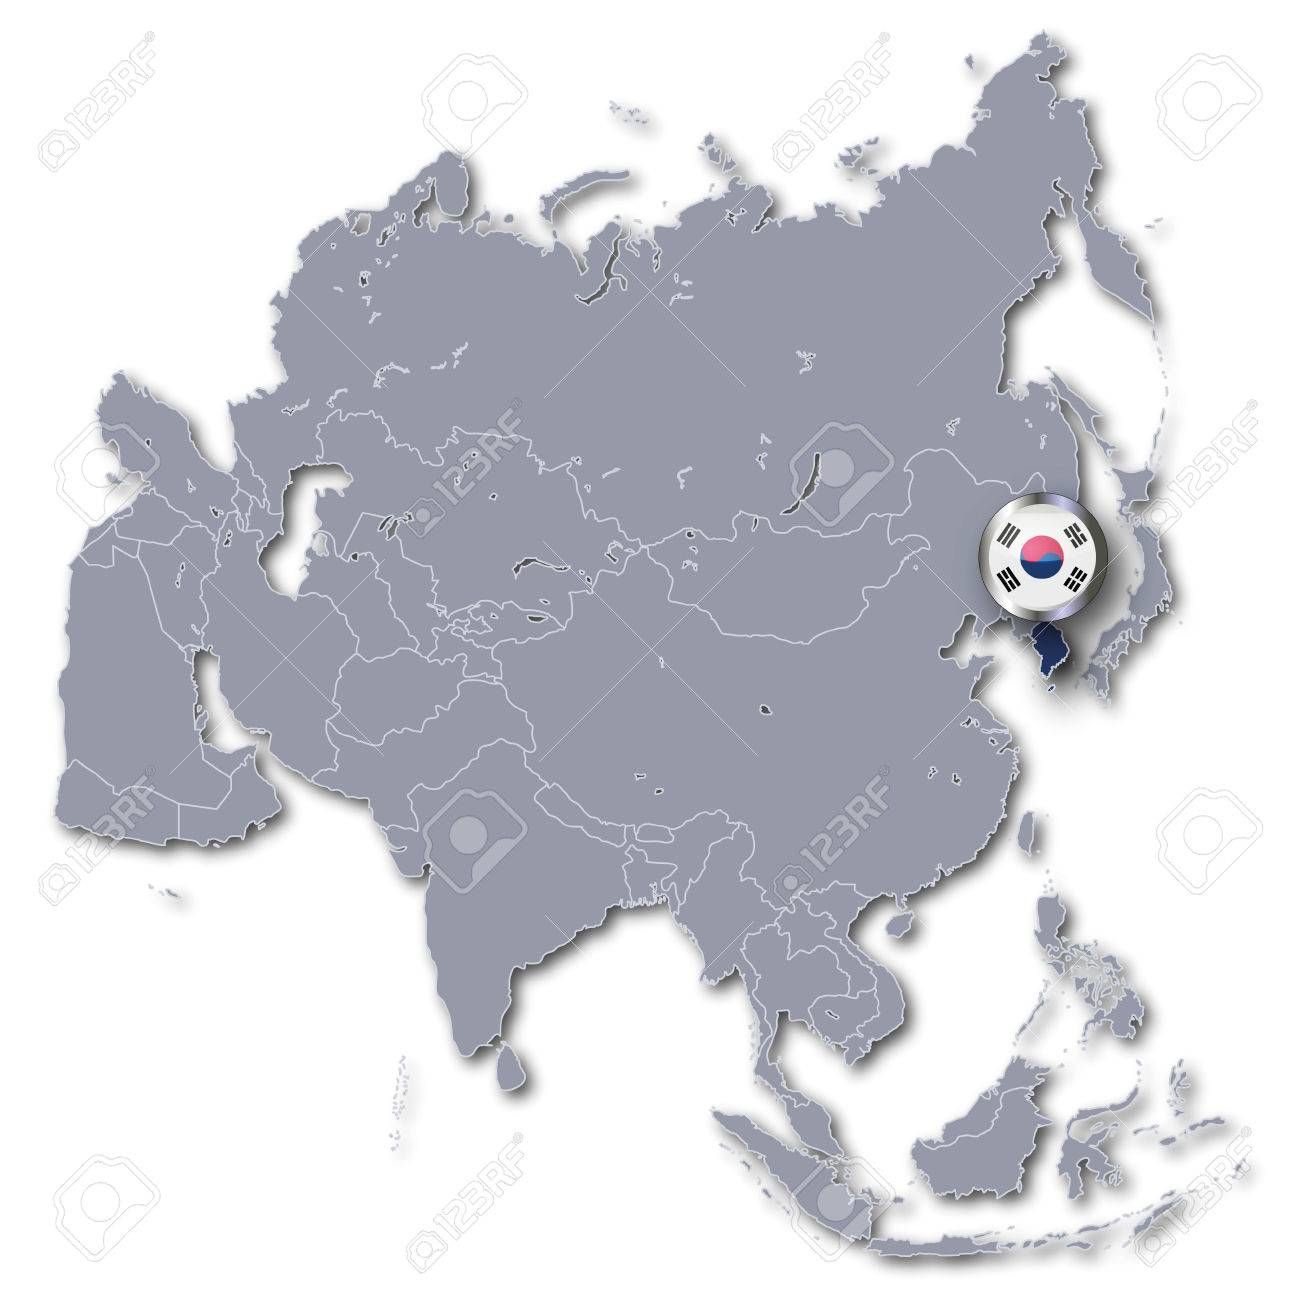 Korea Asia Map.Asia Map With South Korea Stock Photo Picture And Royalty Free